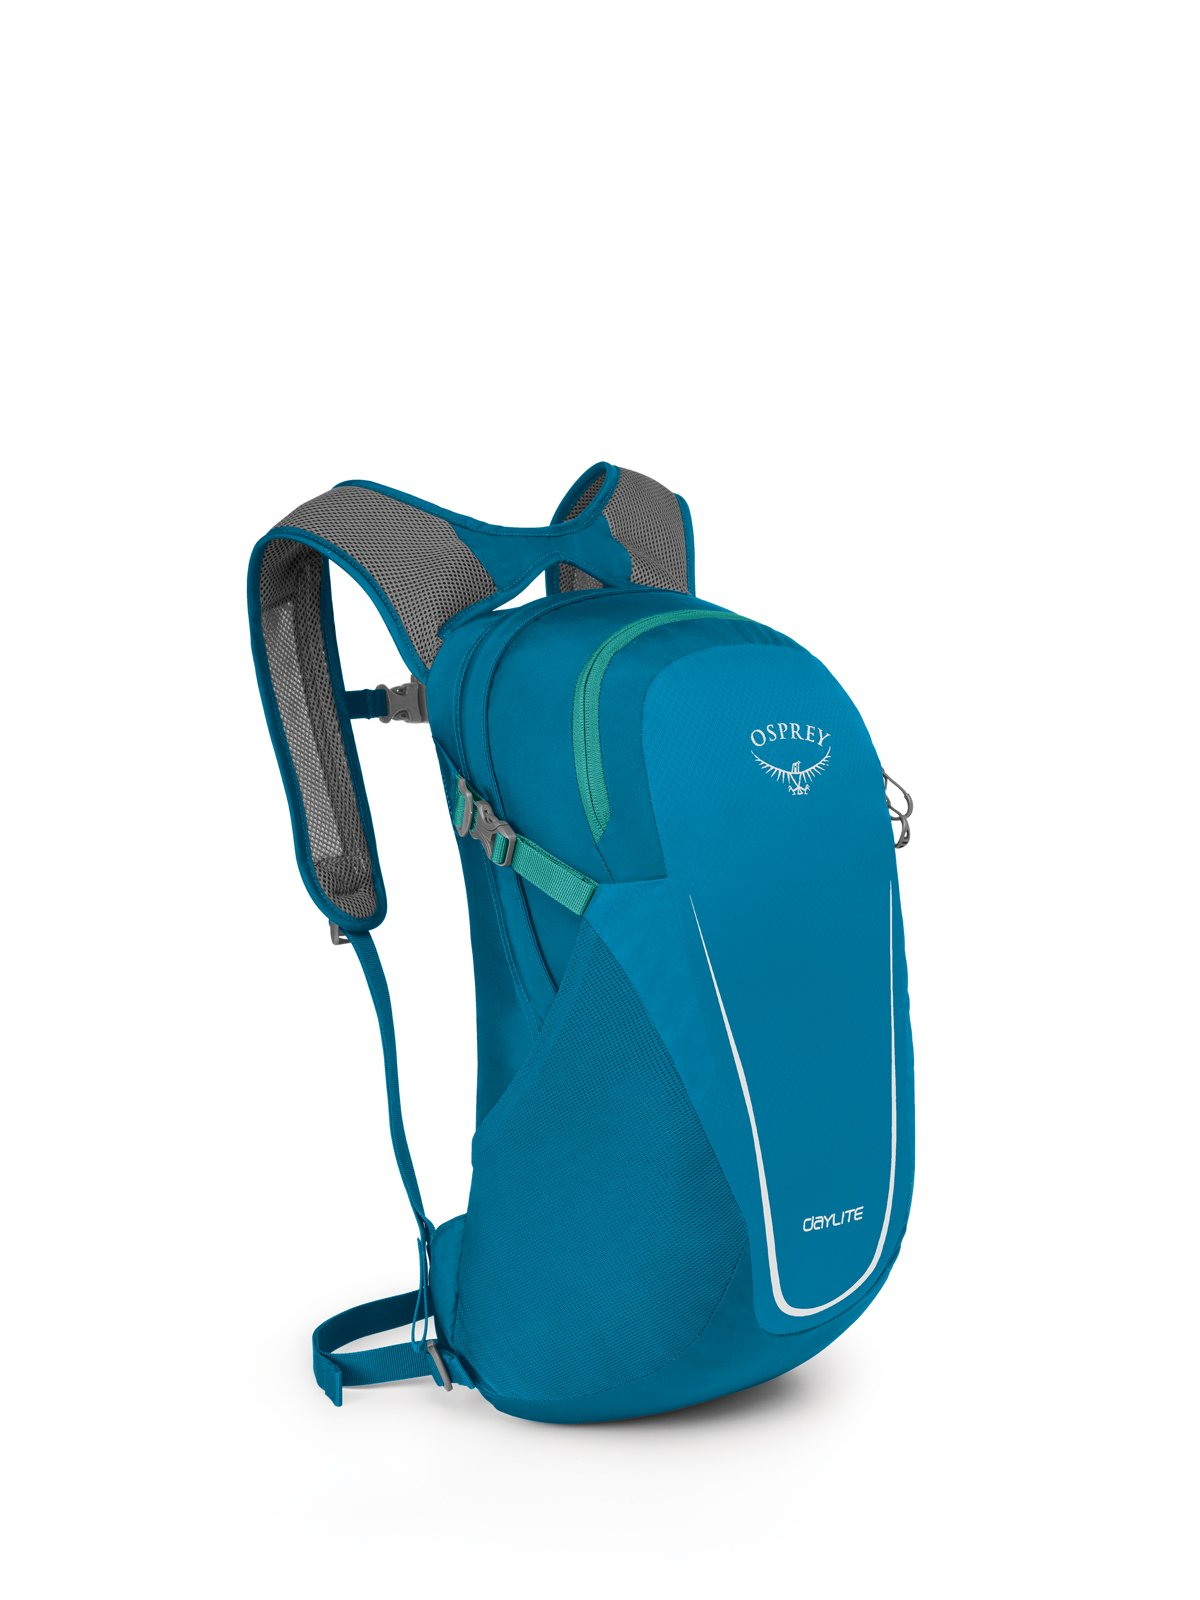 Osprey Packs Daylite Daypack, Sagebrush Blue, One Size